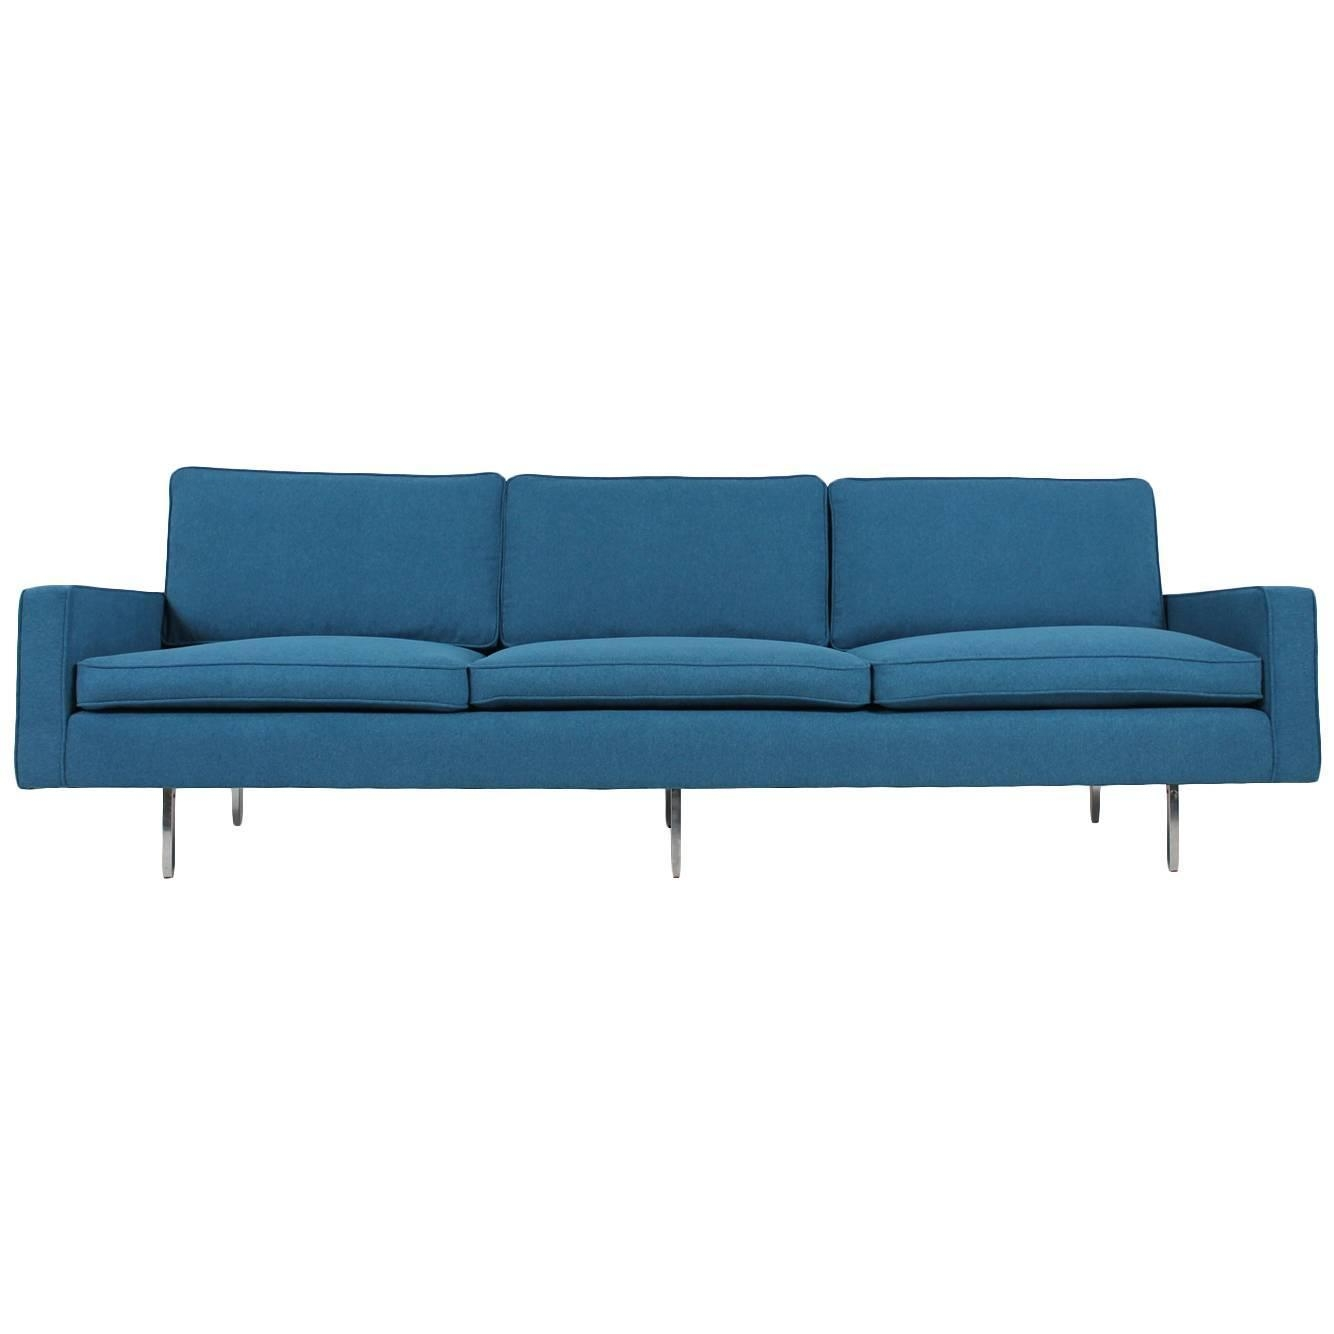 Beautiful Mid Century Florence Knoll Sofa Mod (View 5 of 20)